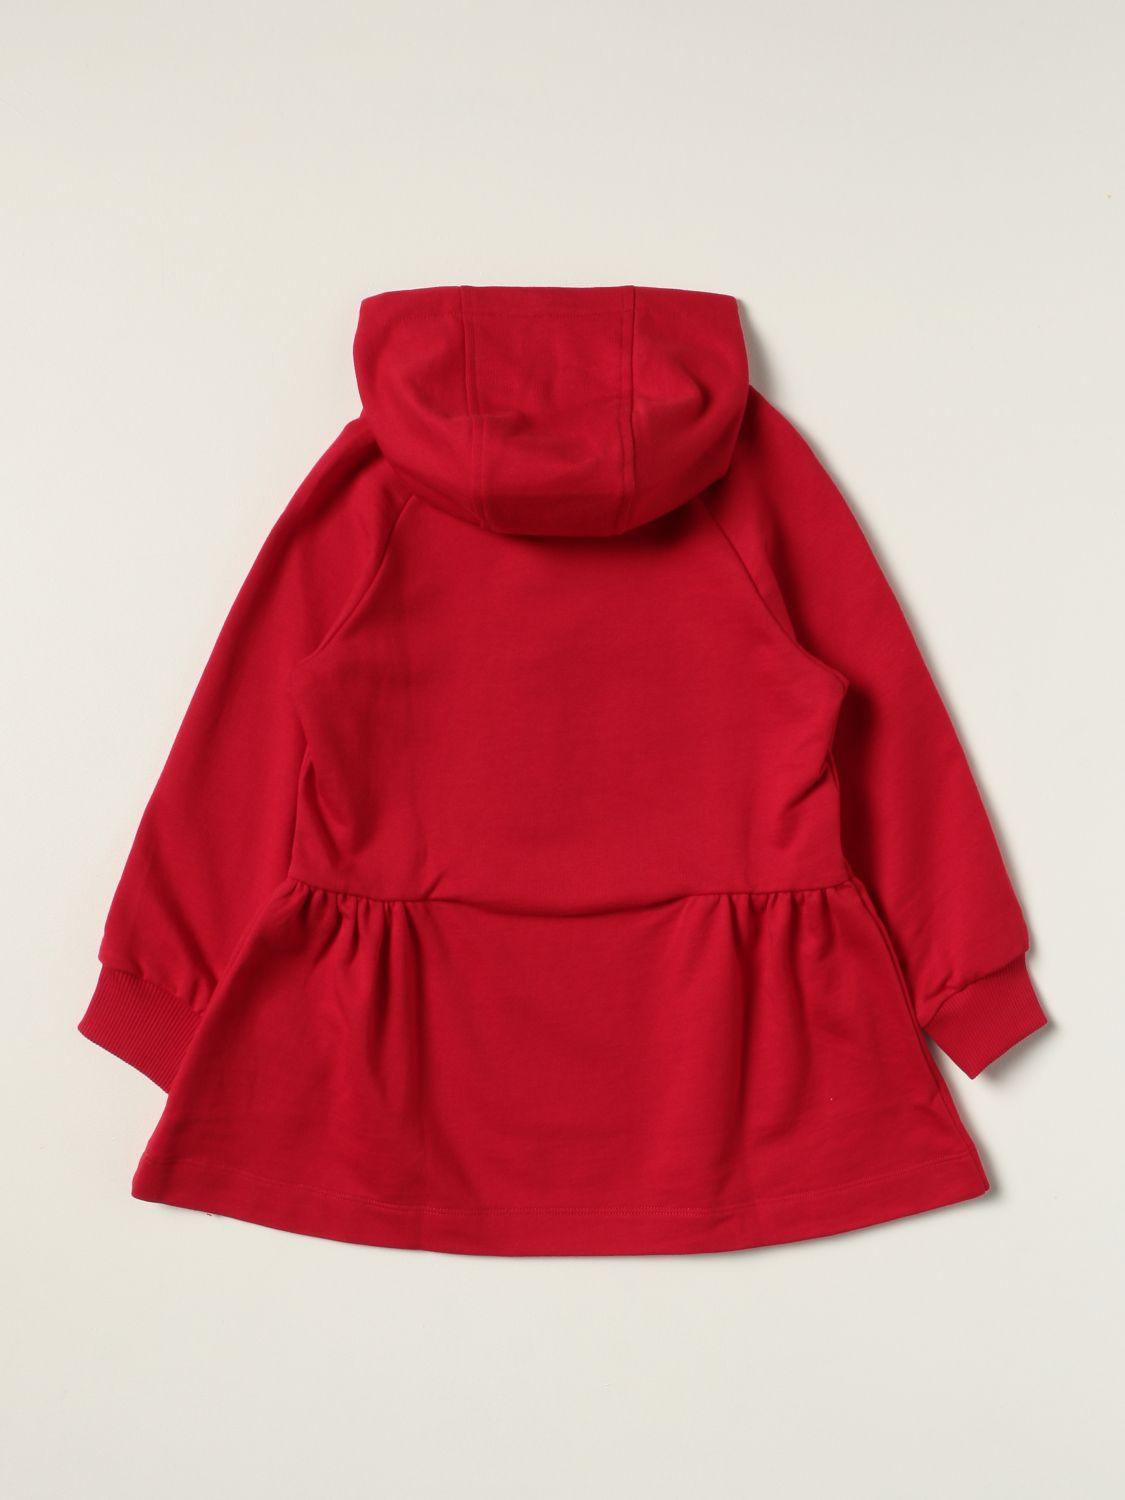 Dress Young Versace: Versace Young hooded dress red 2